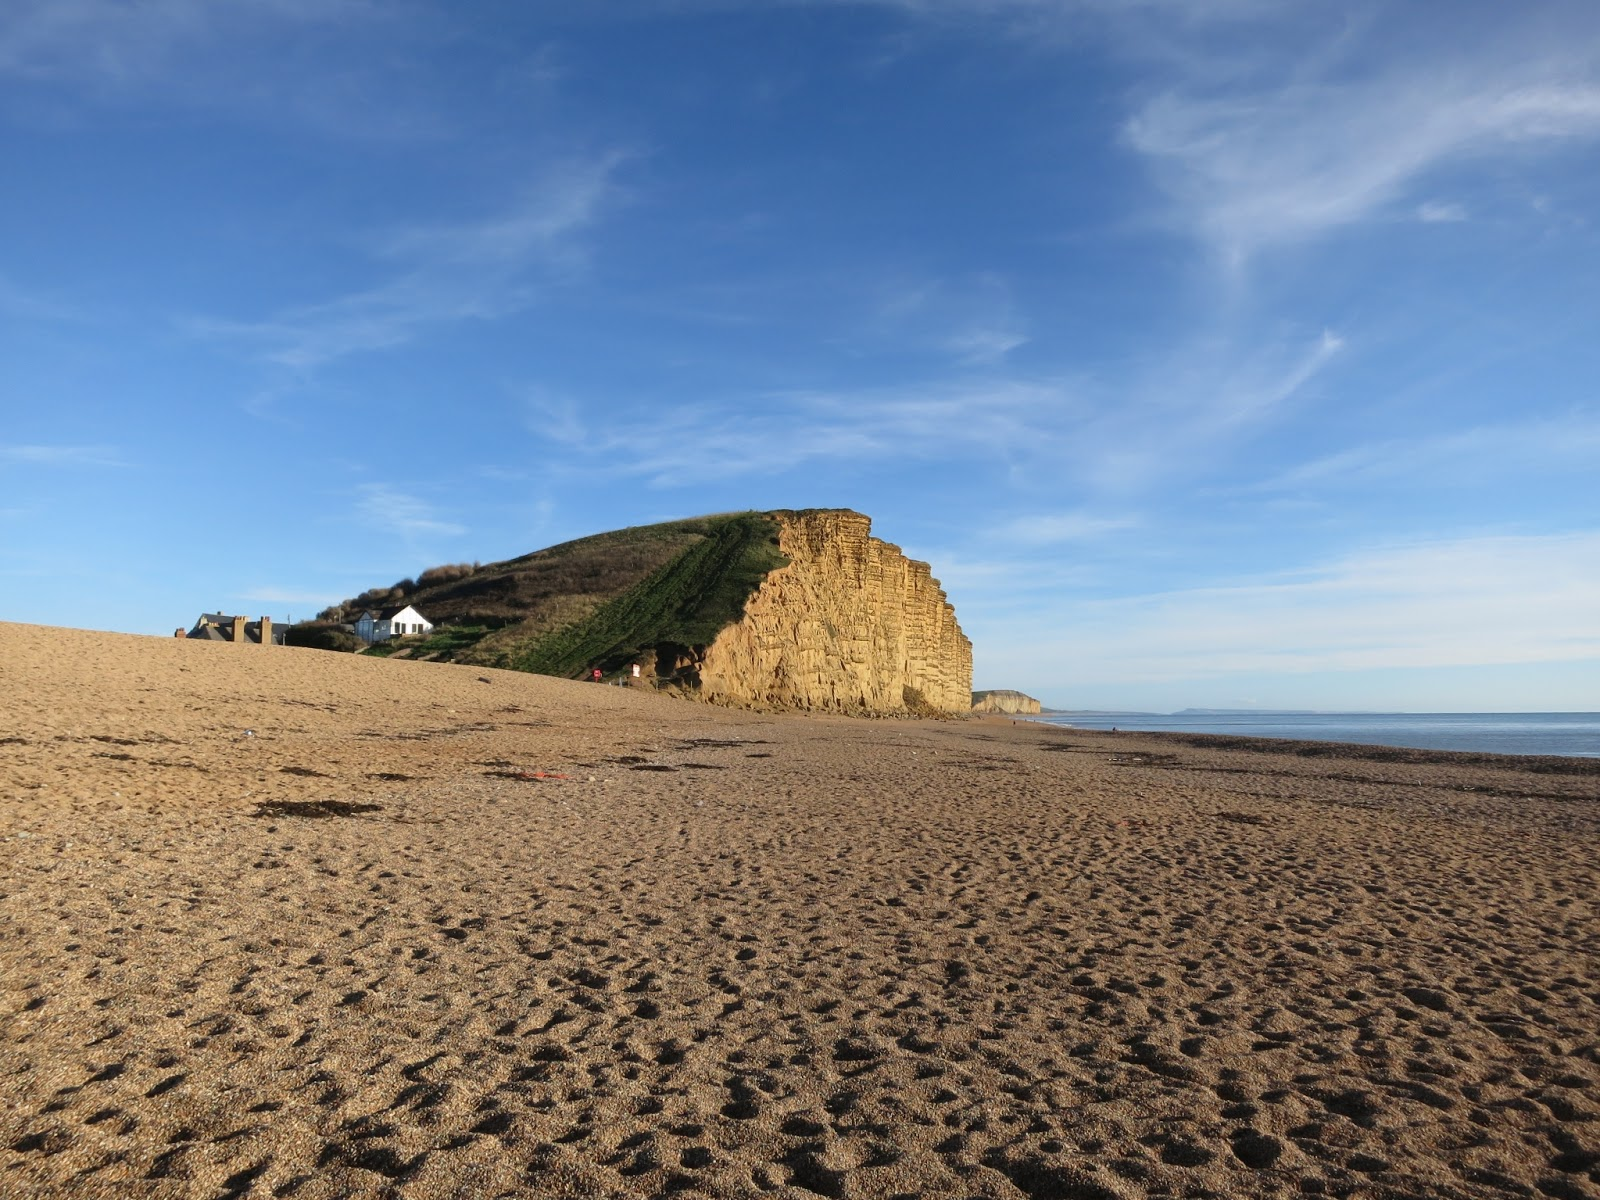 West Bay end of cliff with pebbles in foreground and sea beside.